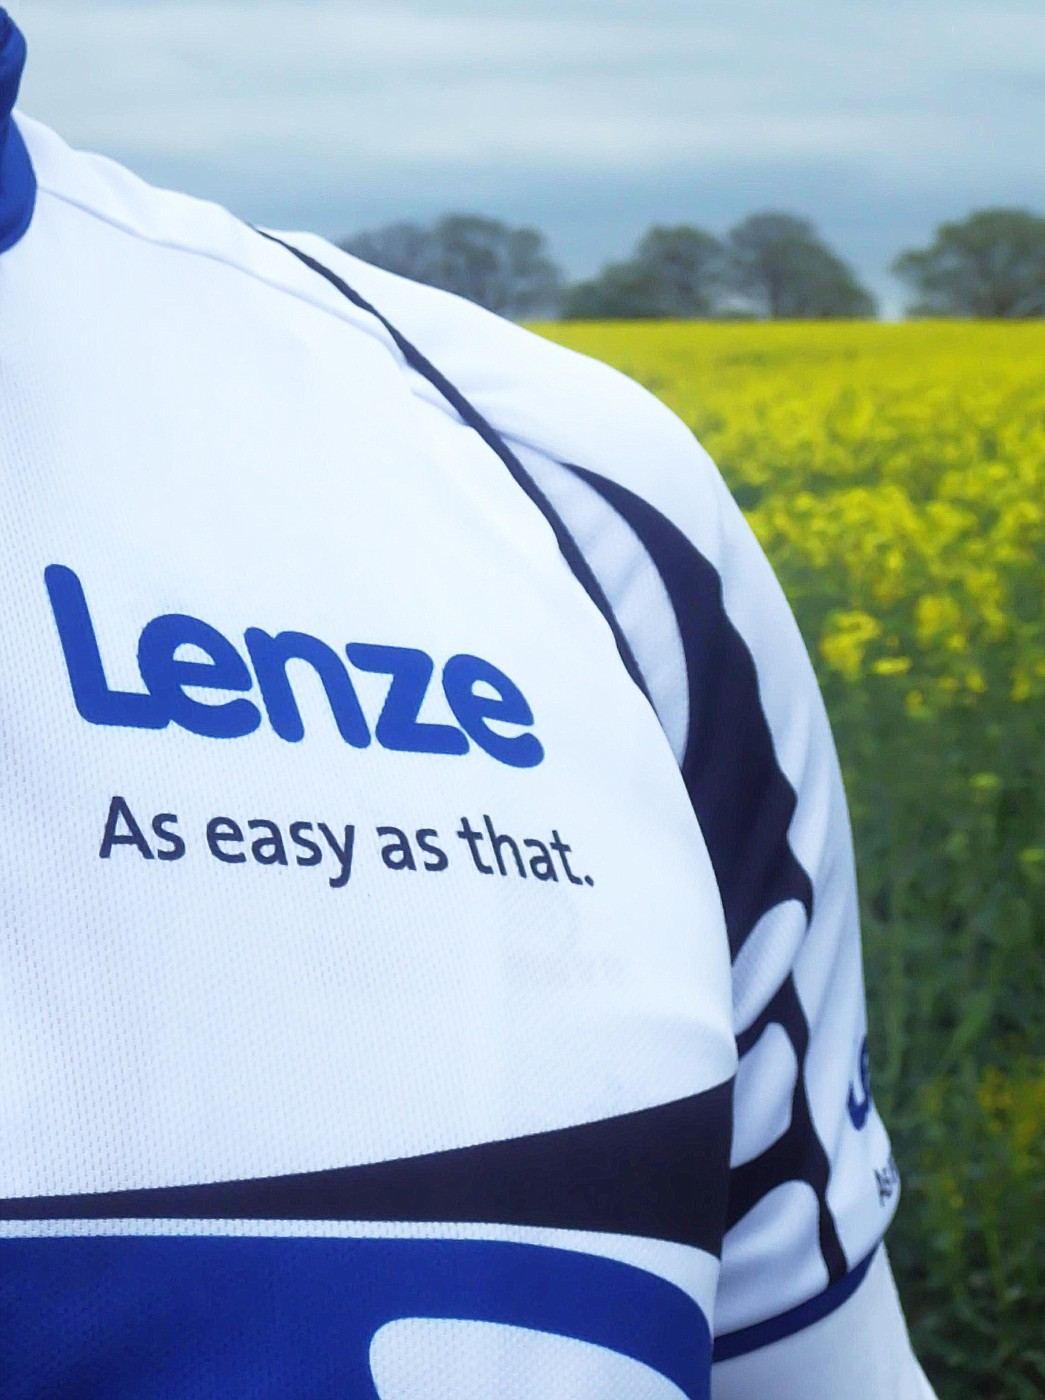 Lenze - As easy as that